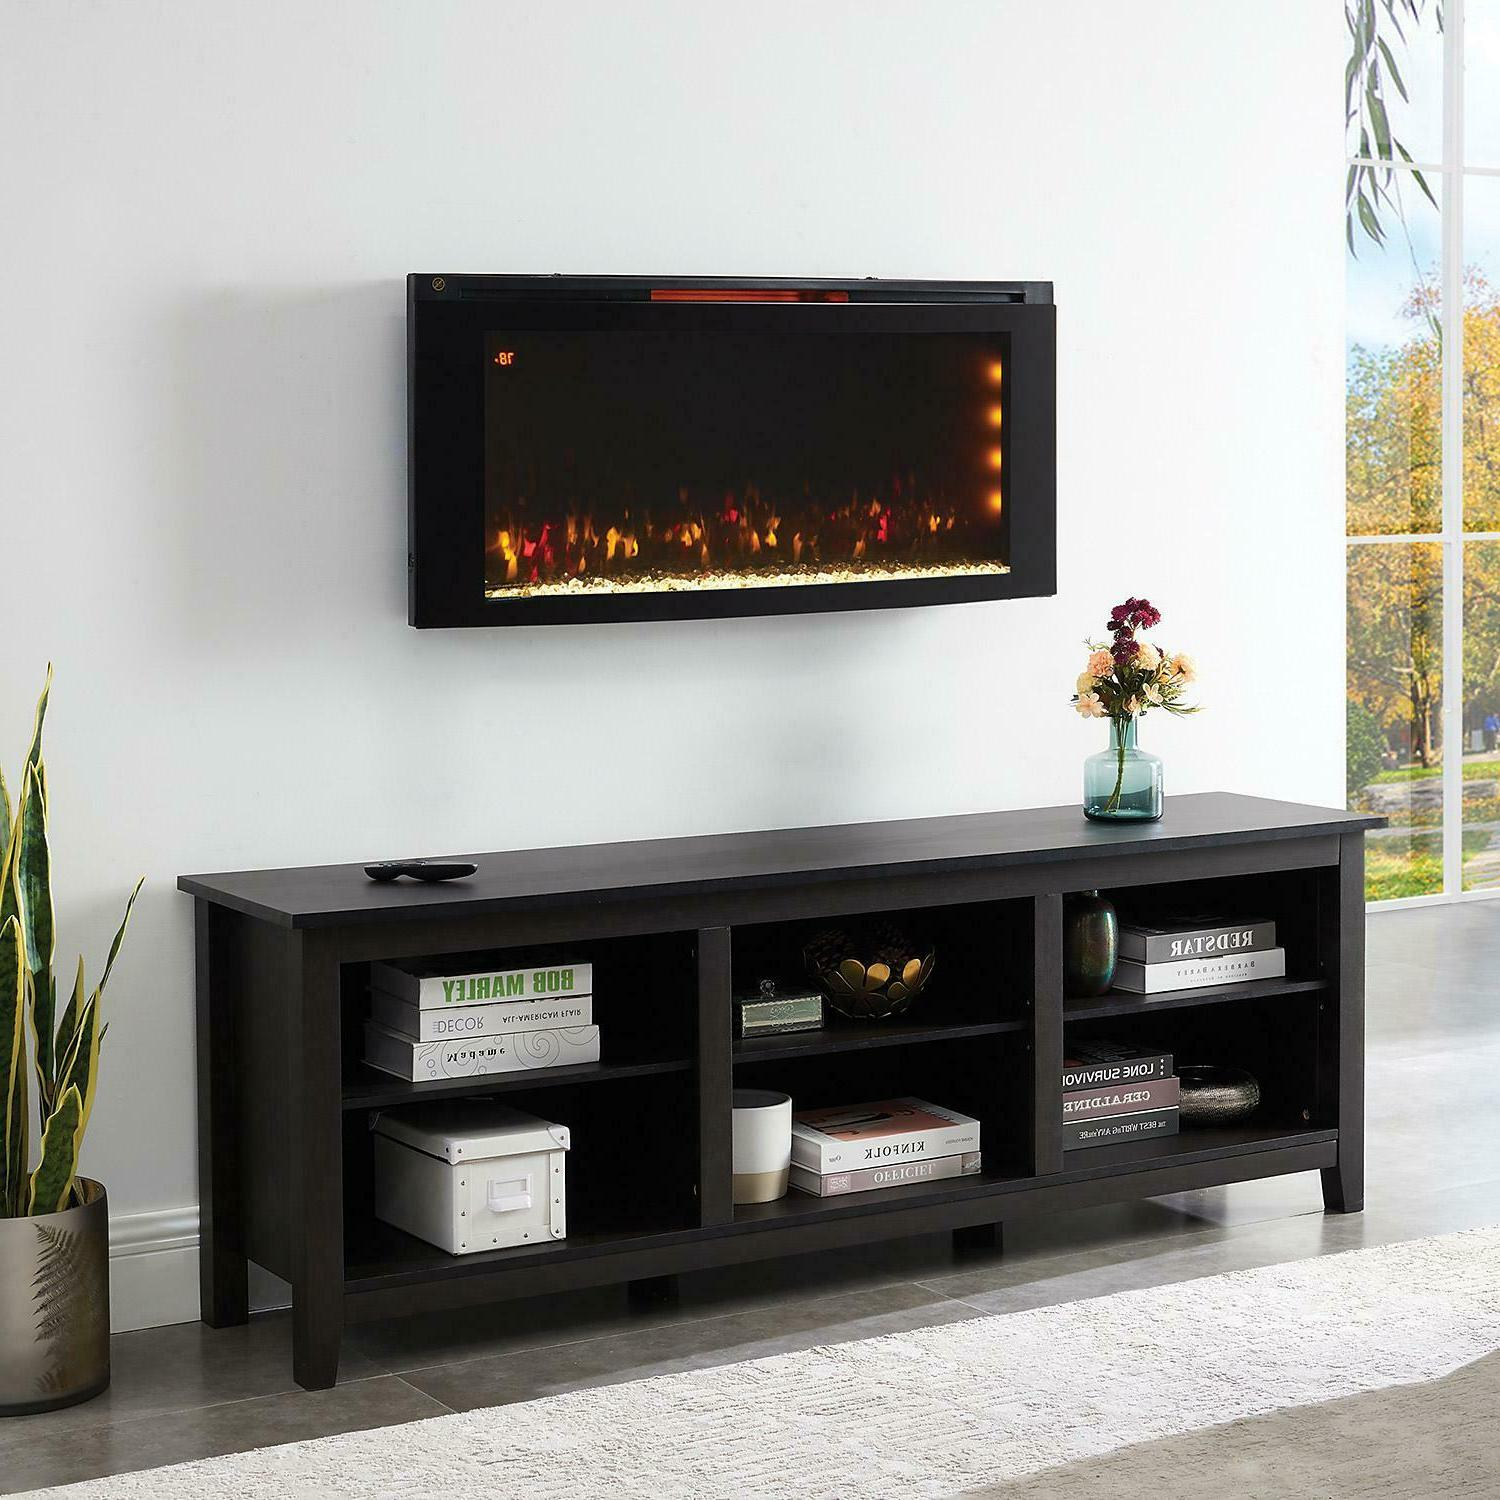 "Powerheat 42"" Wall Mounted Electric Fireplace with Display S"